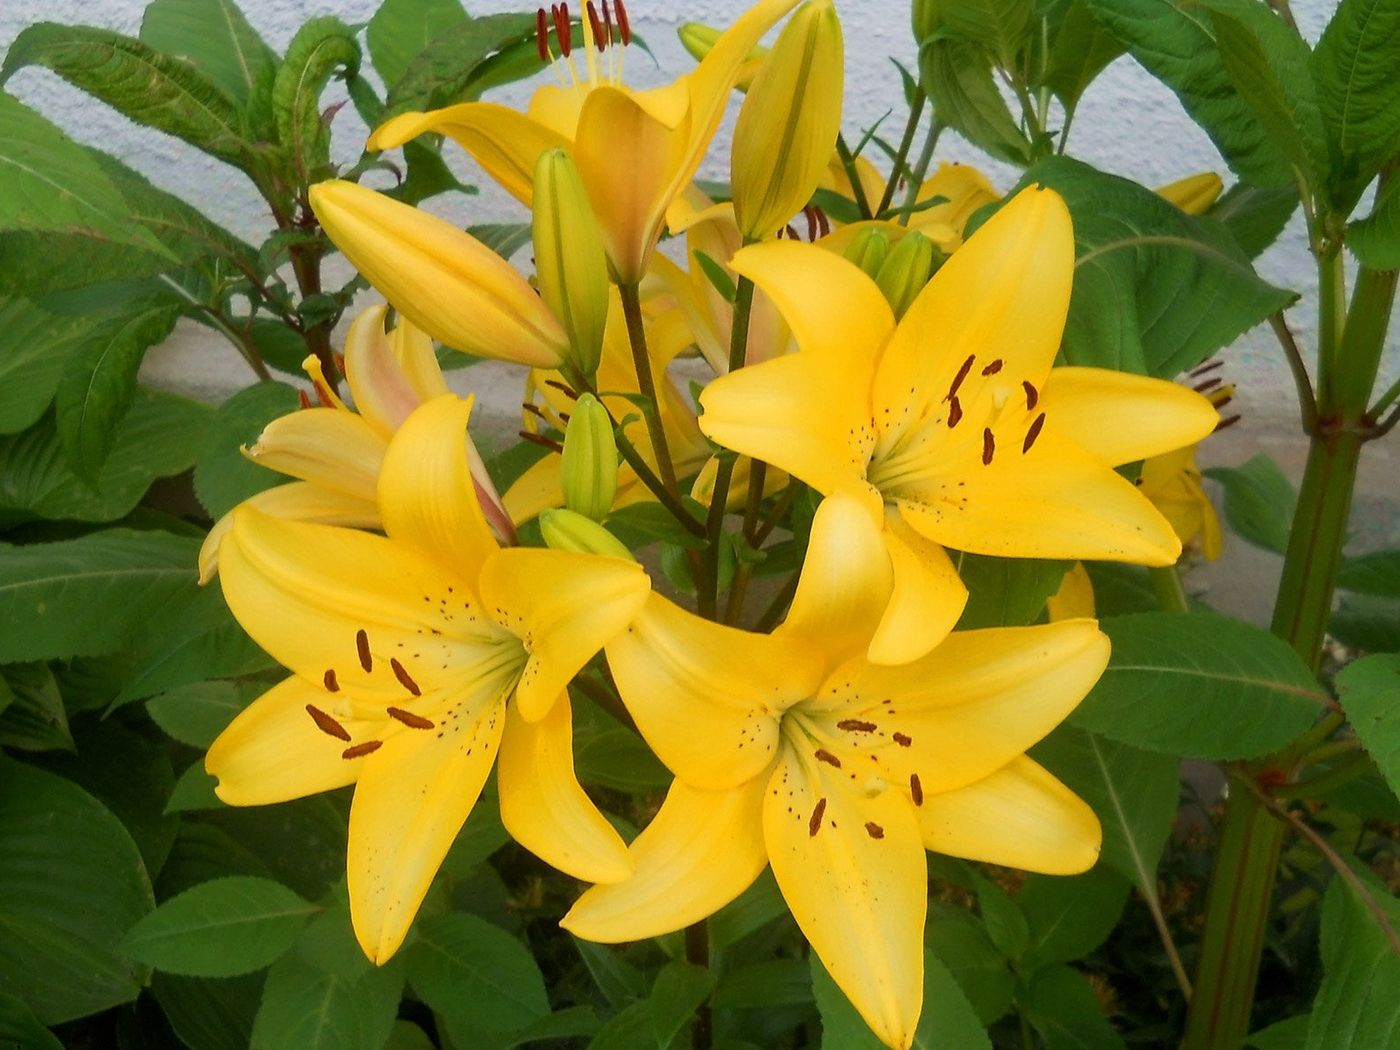 157603 download wallpaper Flowers, Lilies, Flower Bed, Flowerbed, Wall, Greens, Stamens screensavers and pictures for free